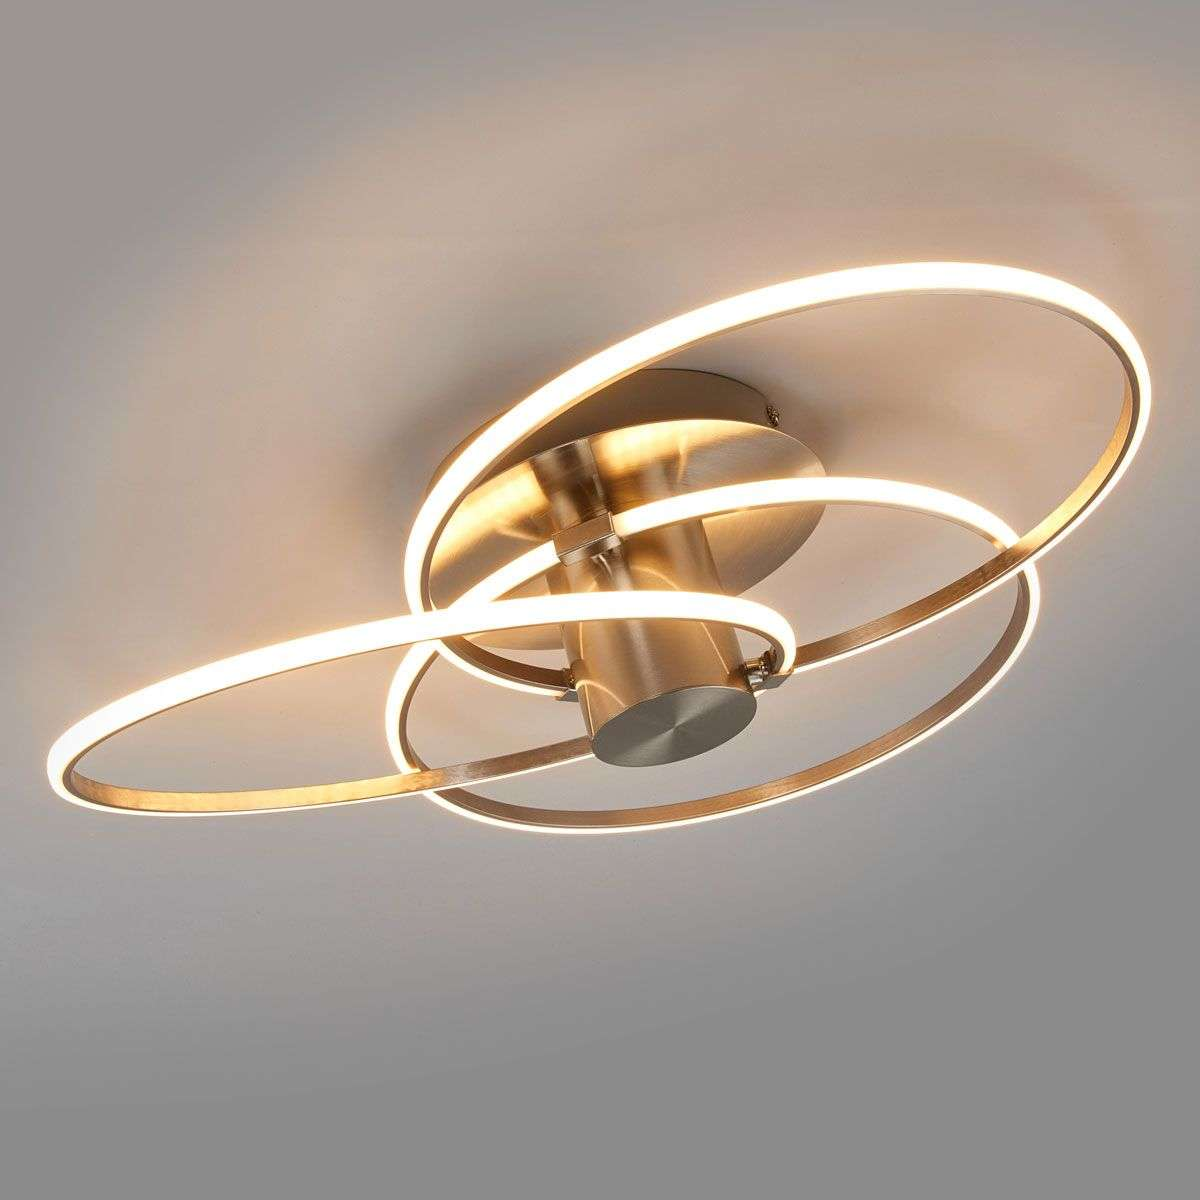 Modern LED ceiling light Antoni, 3 rings